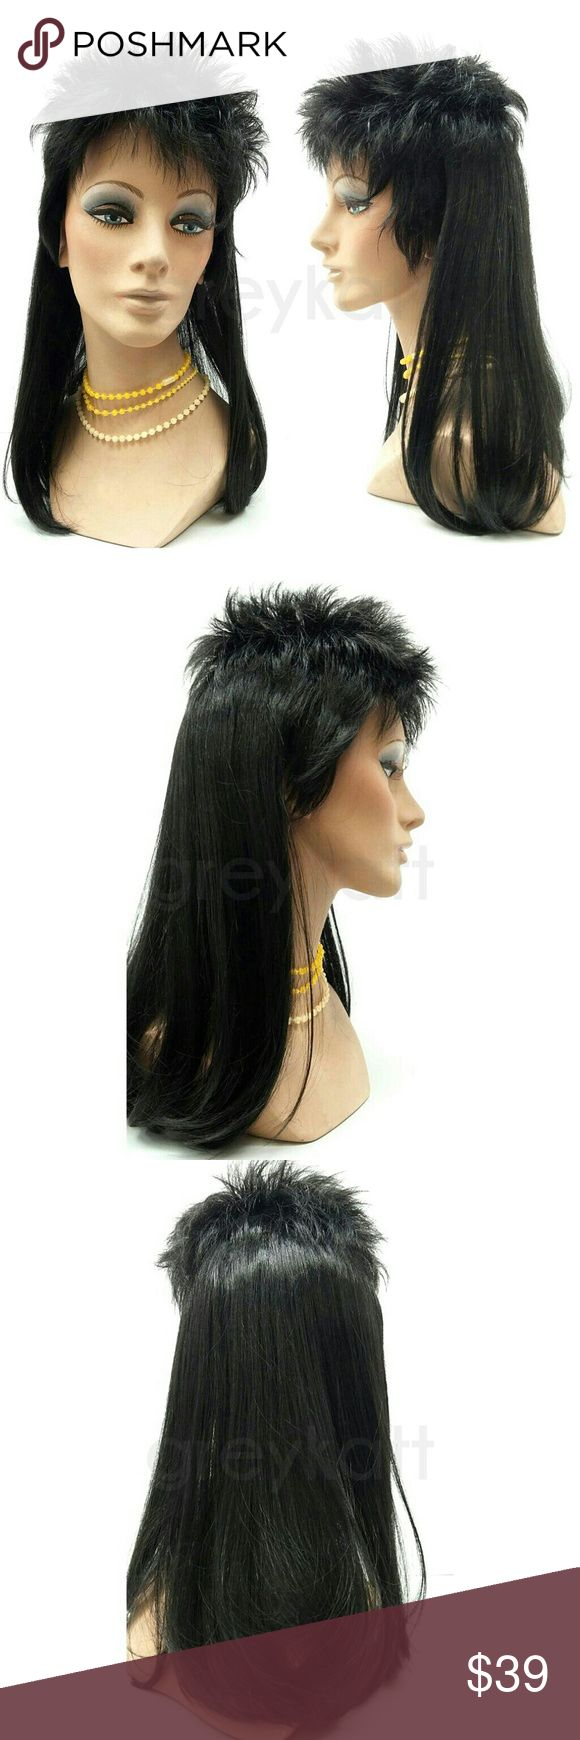 "Black mullet wig Black mullet hair style. Short on top, long and straight in the back. Made from synthetic fibers. *Not heat-resistant, do not use heating tools.  Color: Black Length: 17"" inches Circumference: Default at 21"" Materials: Synthetic wig fiber  Wig prices are firm. Accessories Hair Accessories"